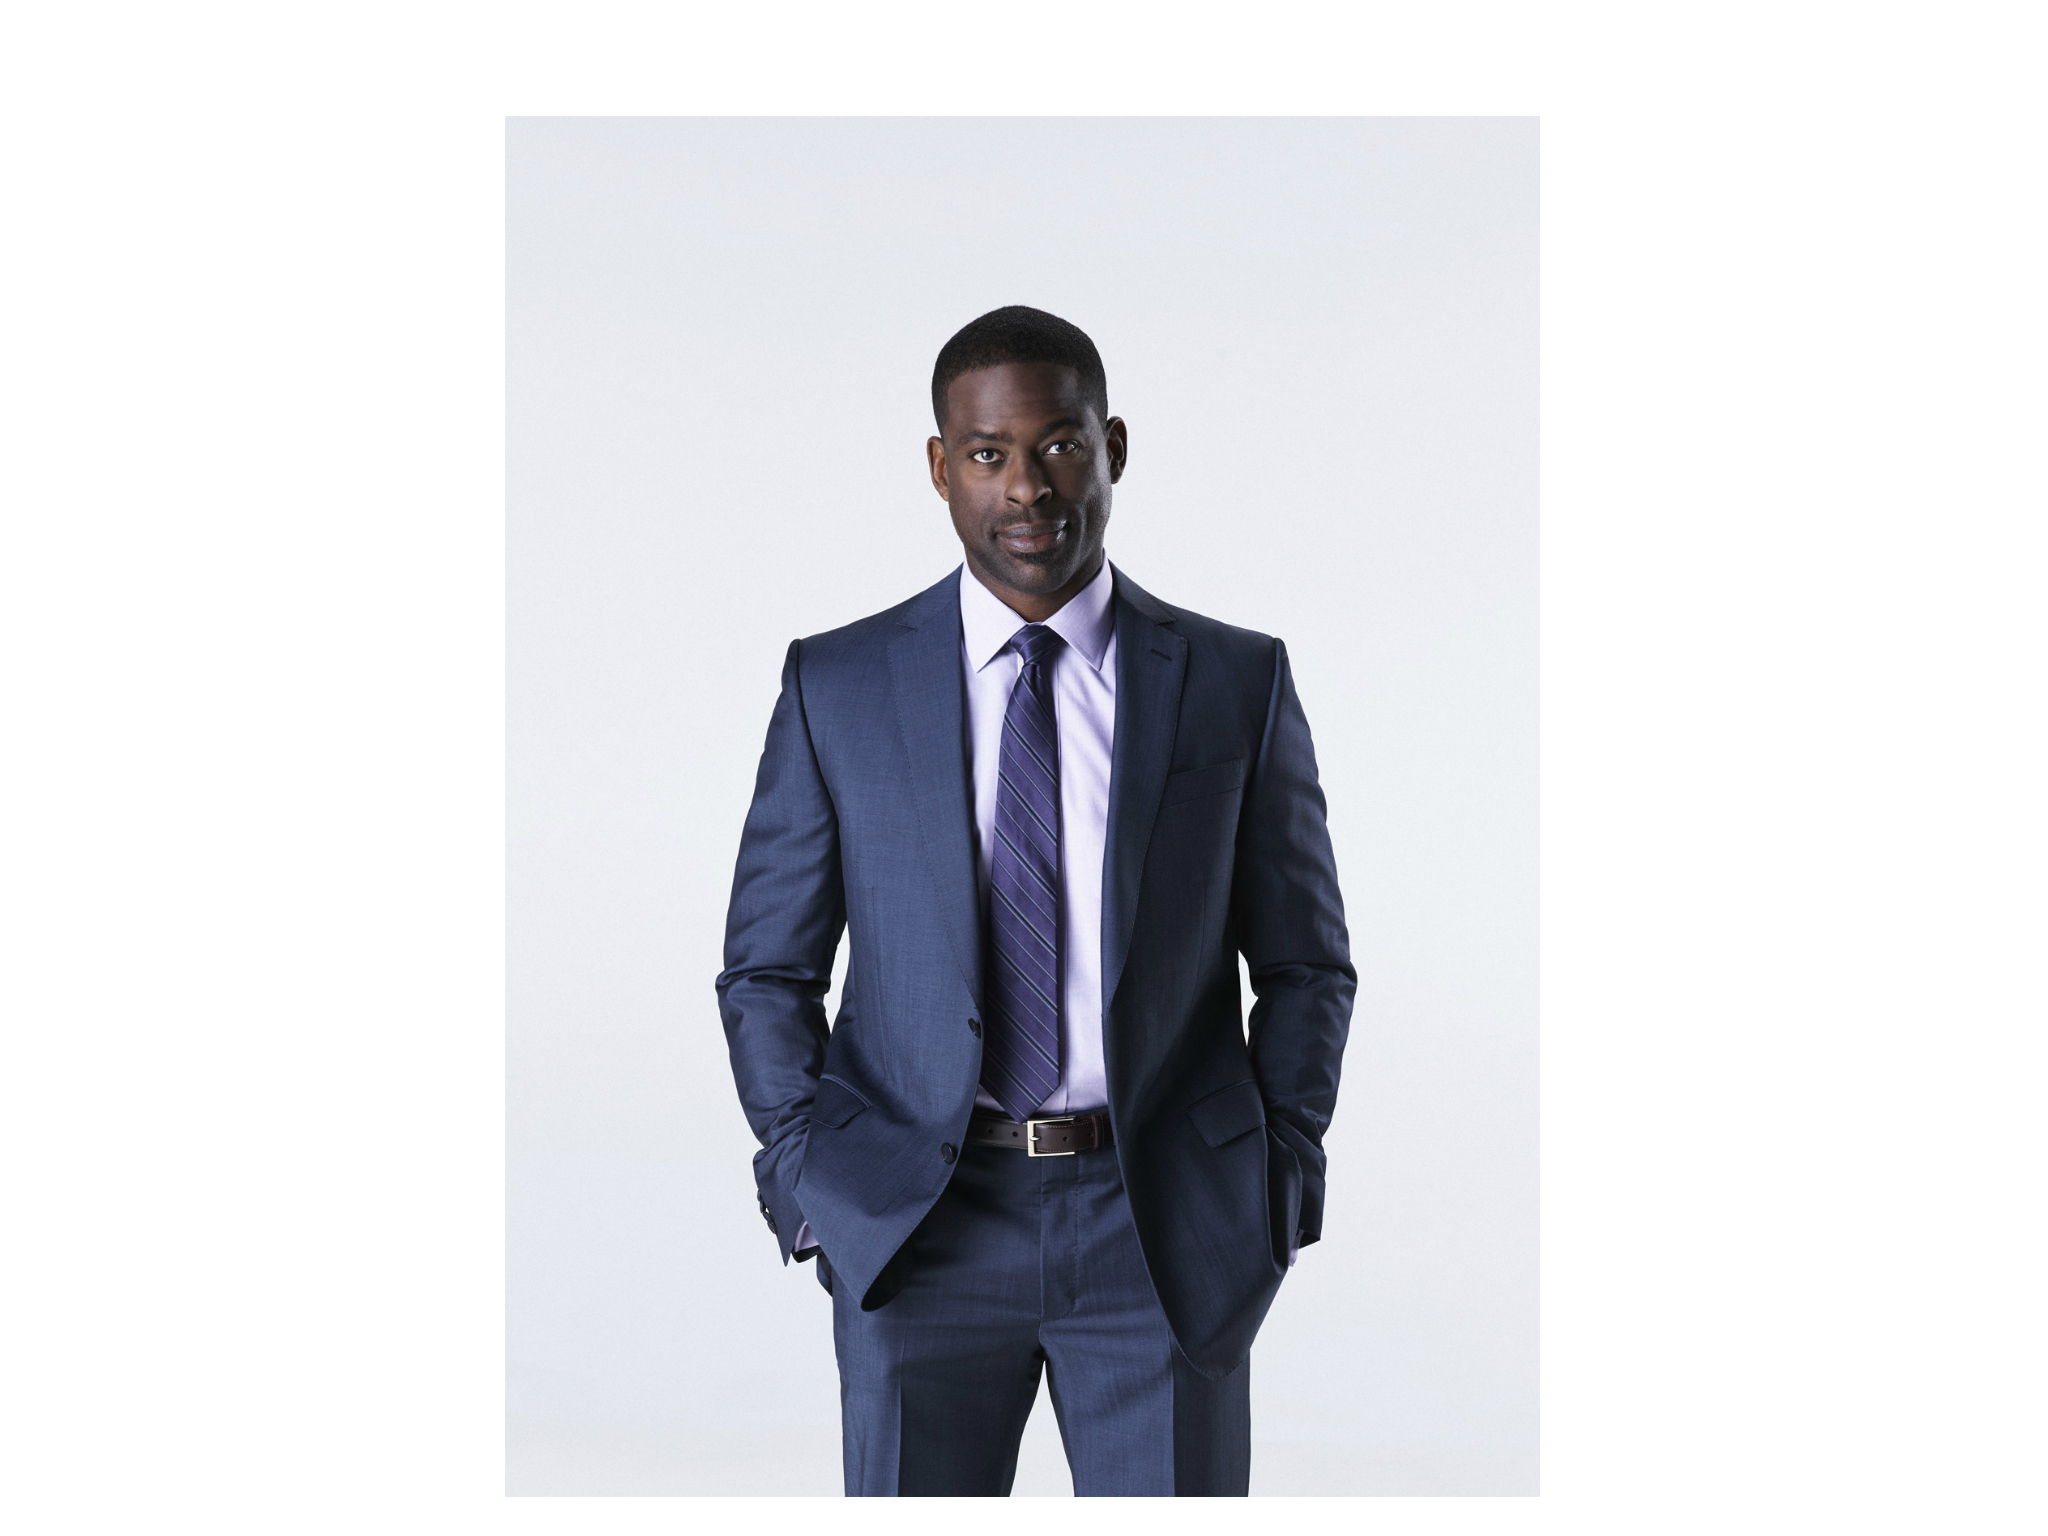 Fotografía del actor Sterling K. Brown